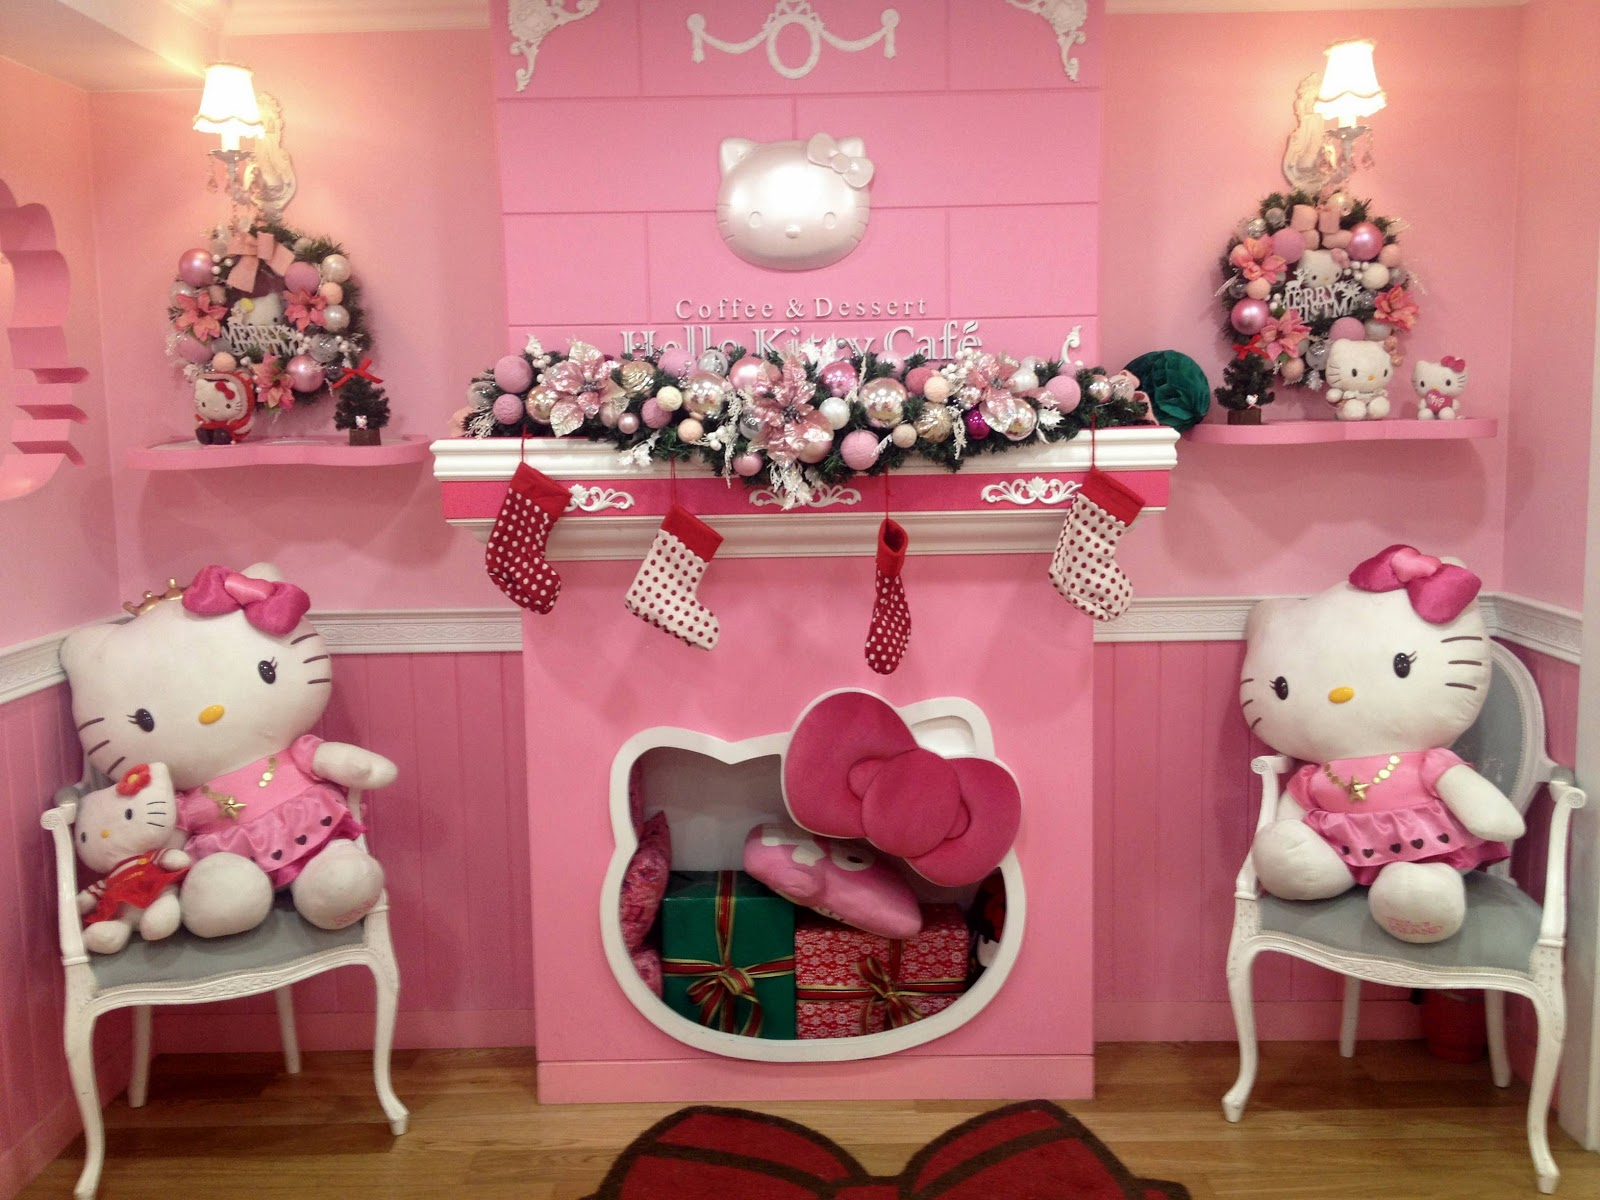 joilynn: christmas eve at 헬로키티 카페 홍대 hello kitty cafe